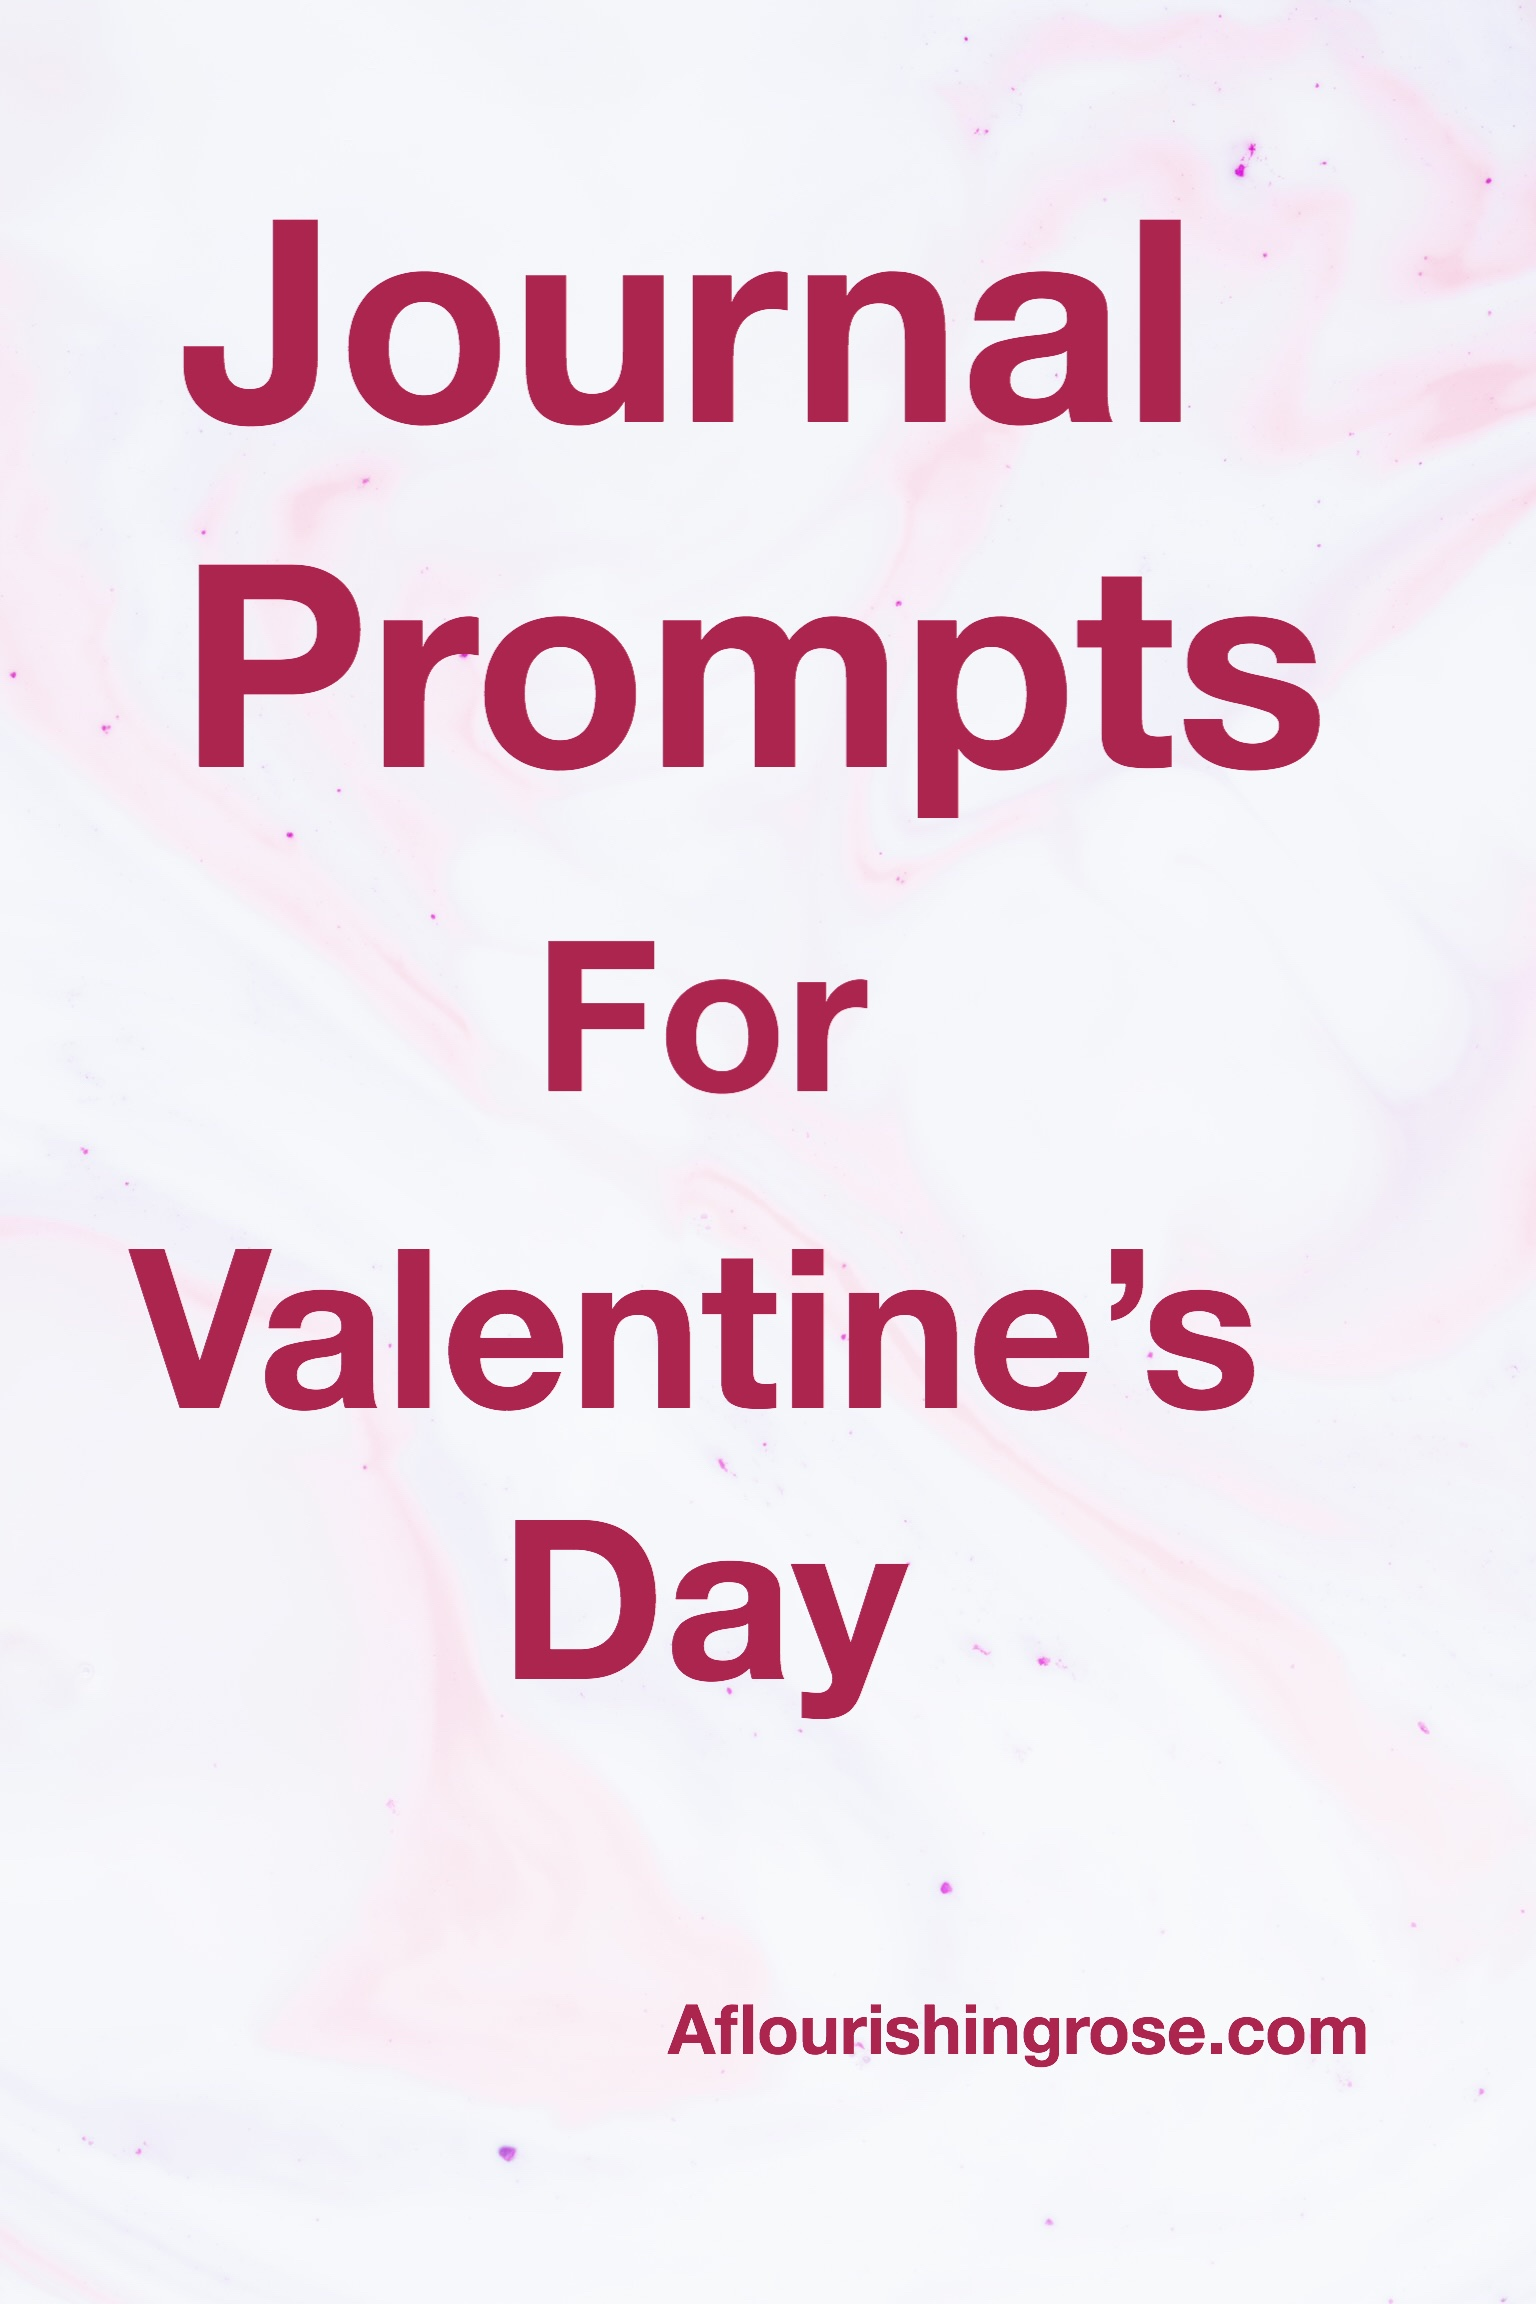 Journal Prompts for Valentine's Day